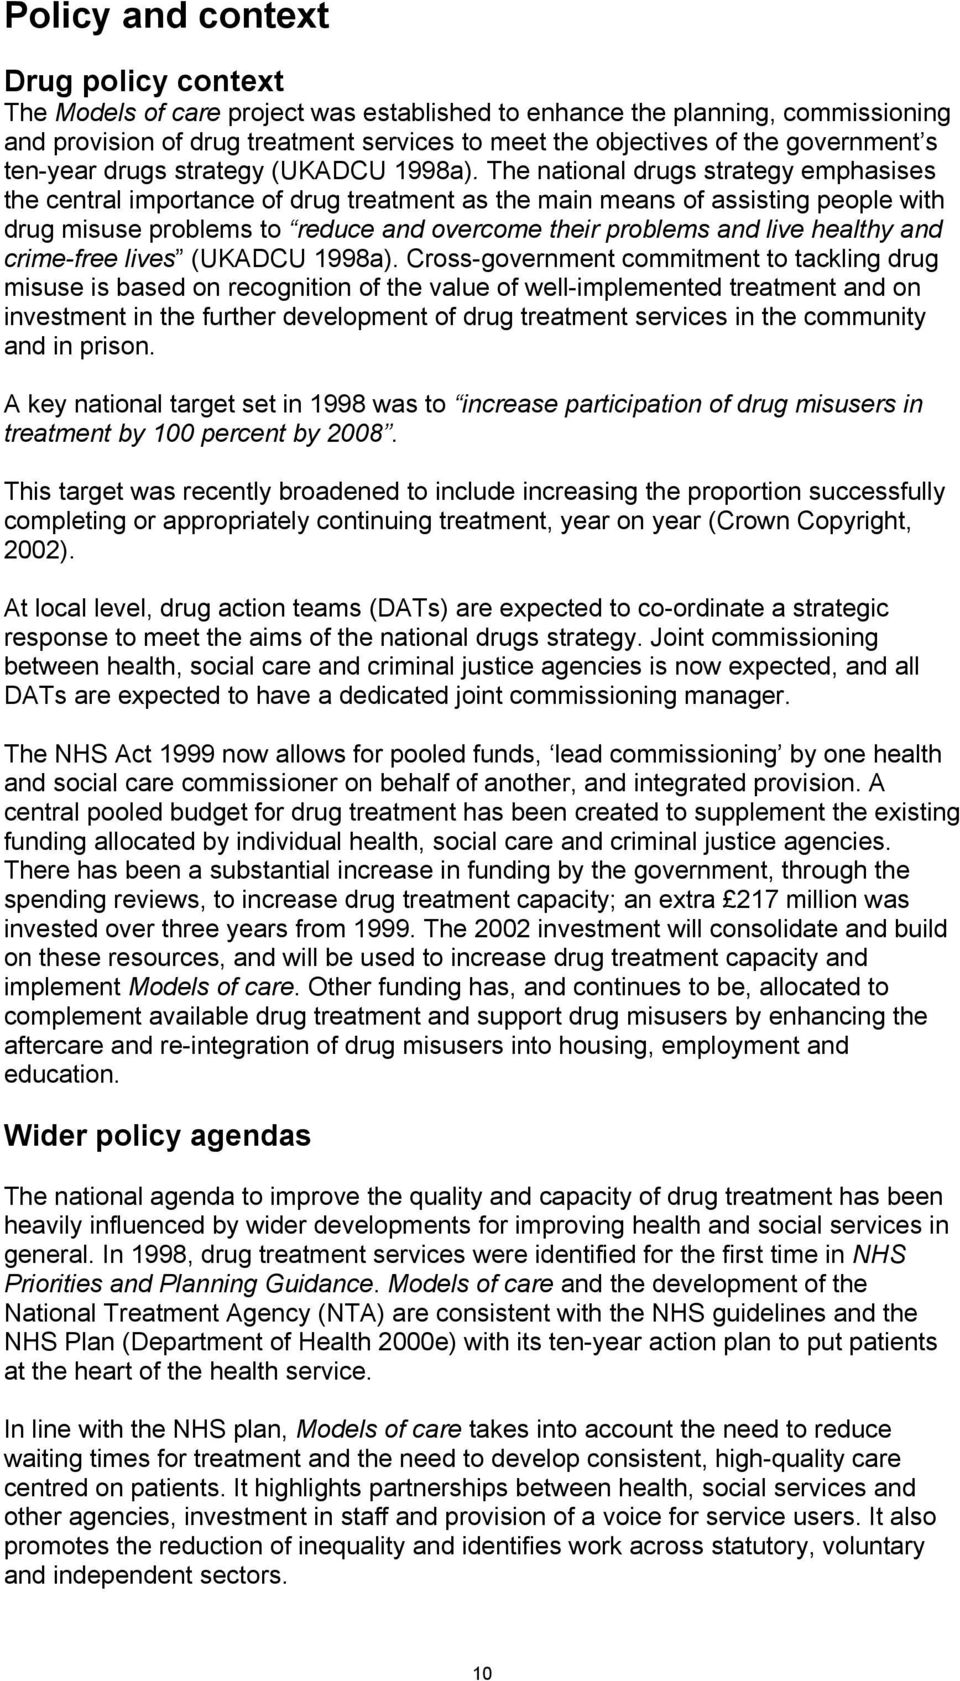 The national drugs strategy emphasises the central importance of drug treatment as the main means of assisting people with drug misuse problems to reduce and overcome their problems and live healthy